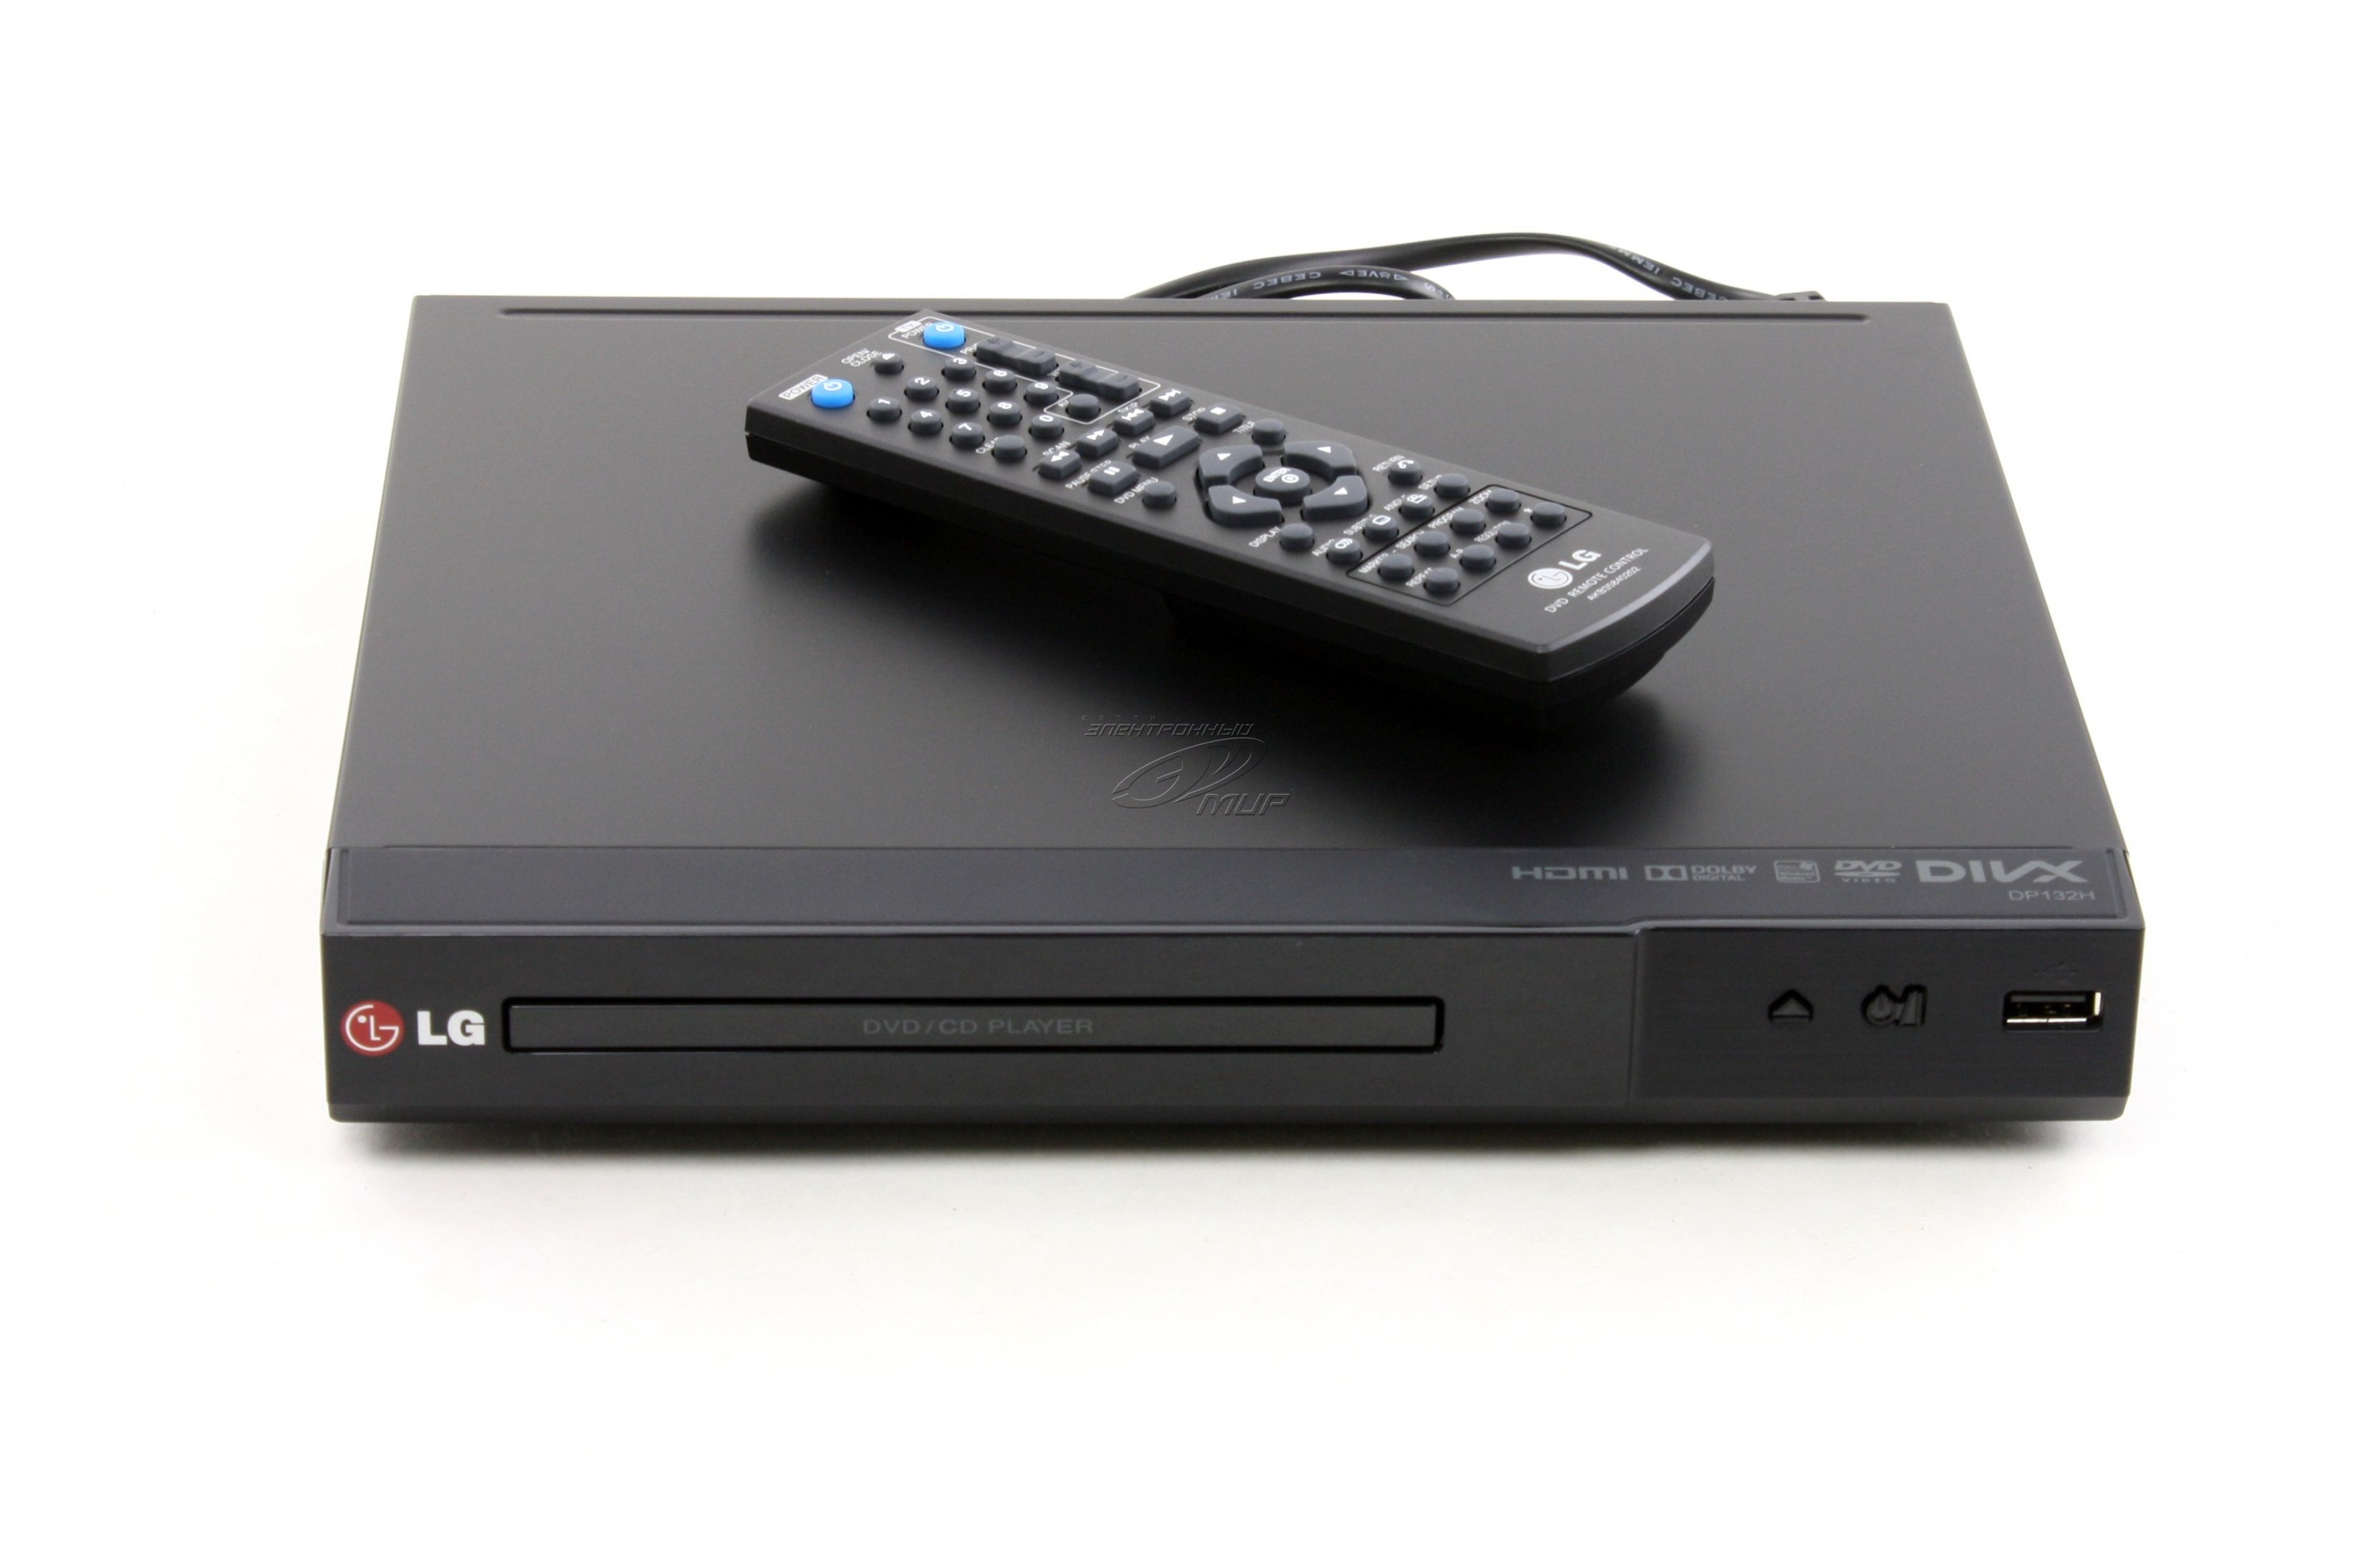 LG DP132H DVD PLAYER